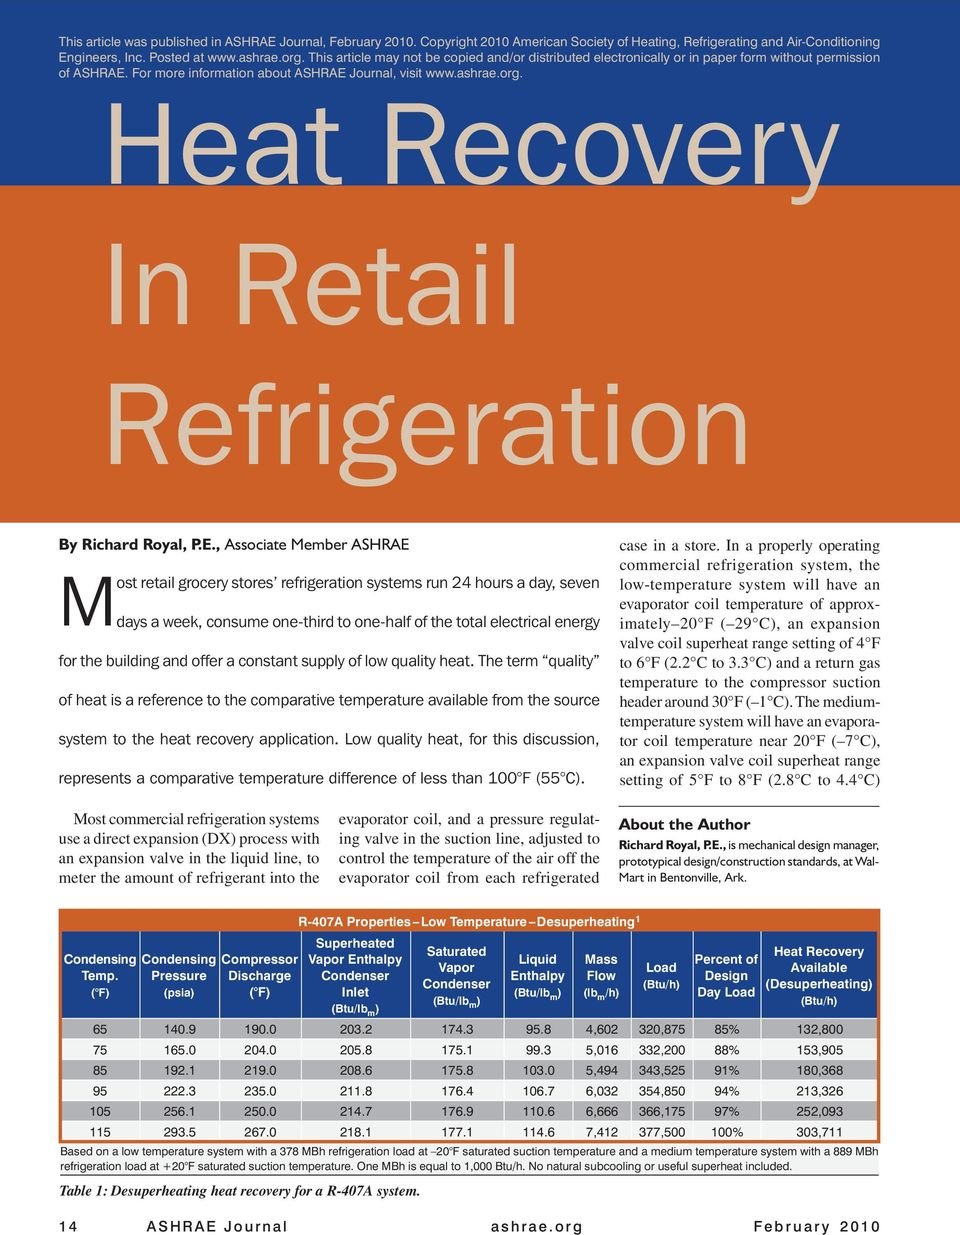 In Retail Refrigeration By Richard Royal, P.E.